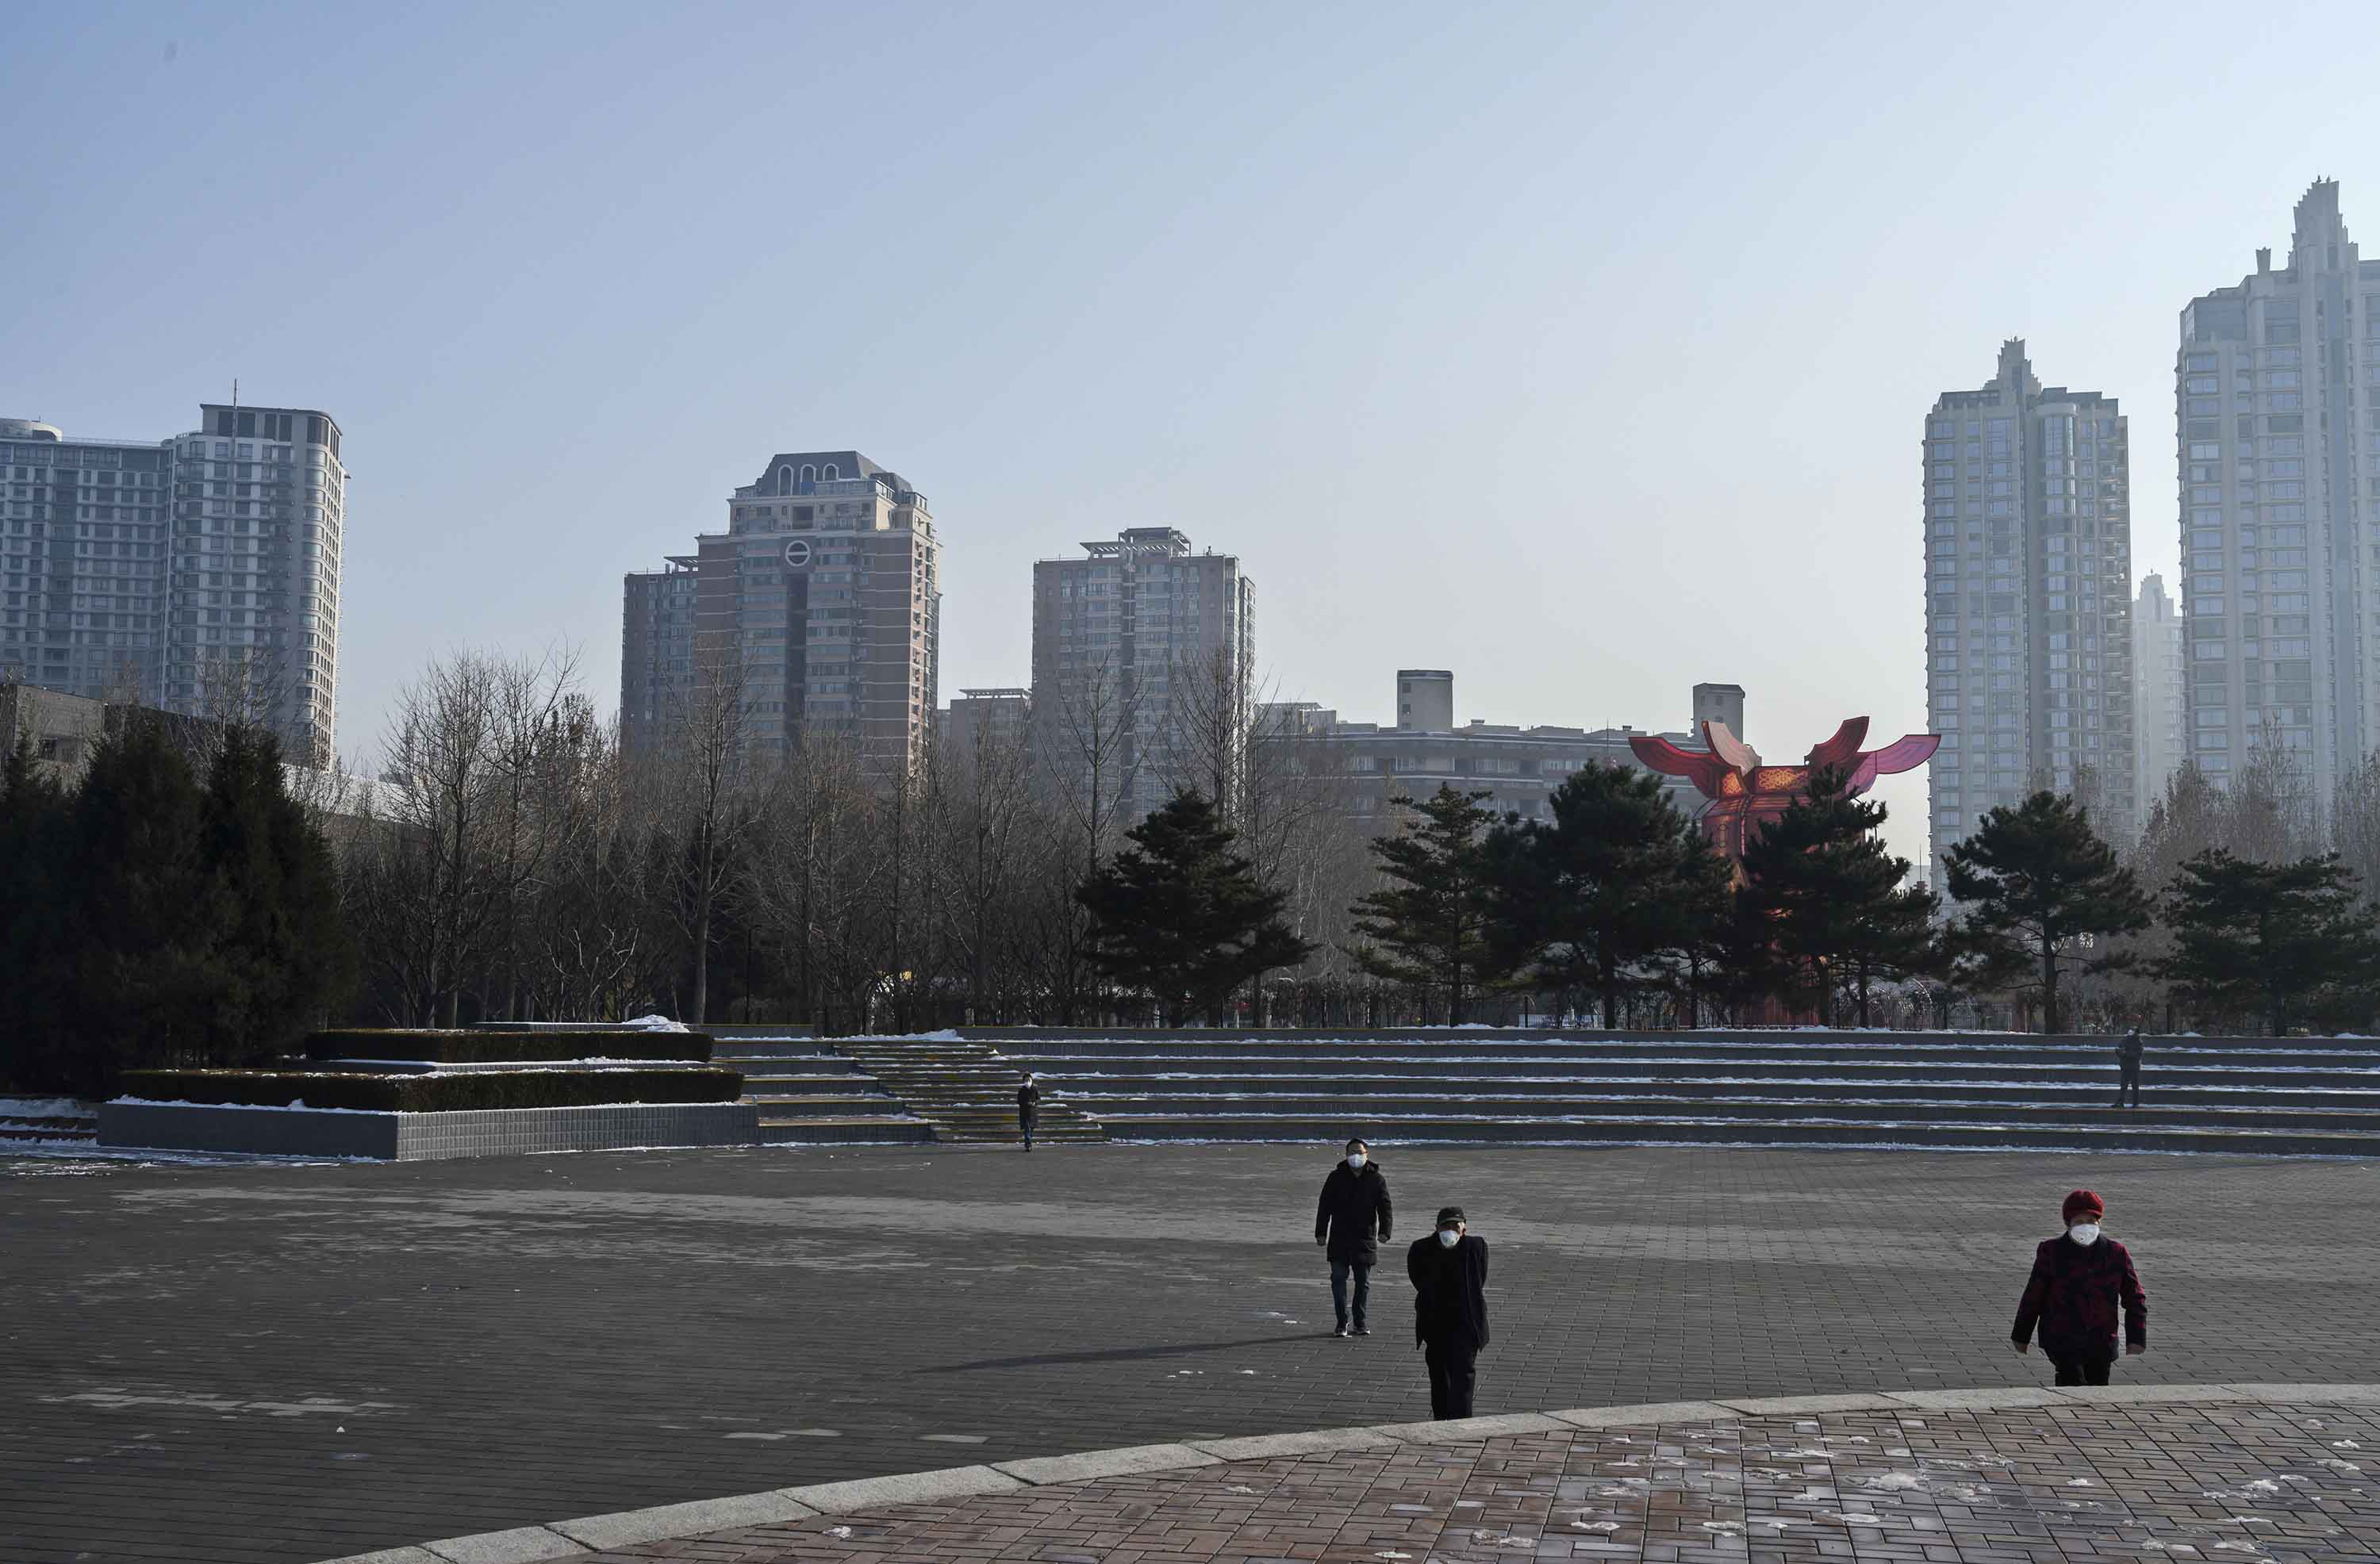 People wear protective masks as they walk in a nearly empty Chaoyang Park in Beijing on Sunday.